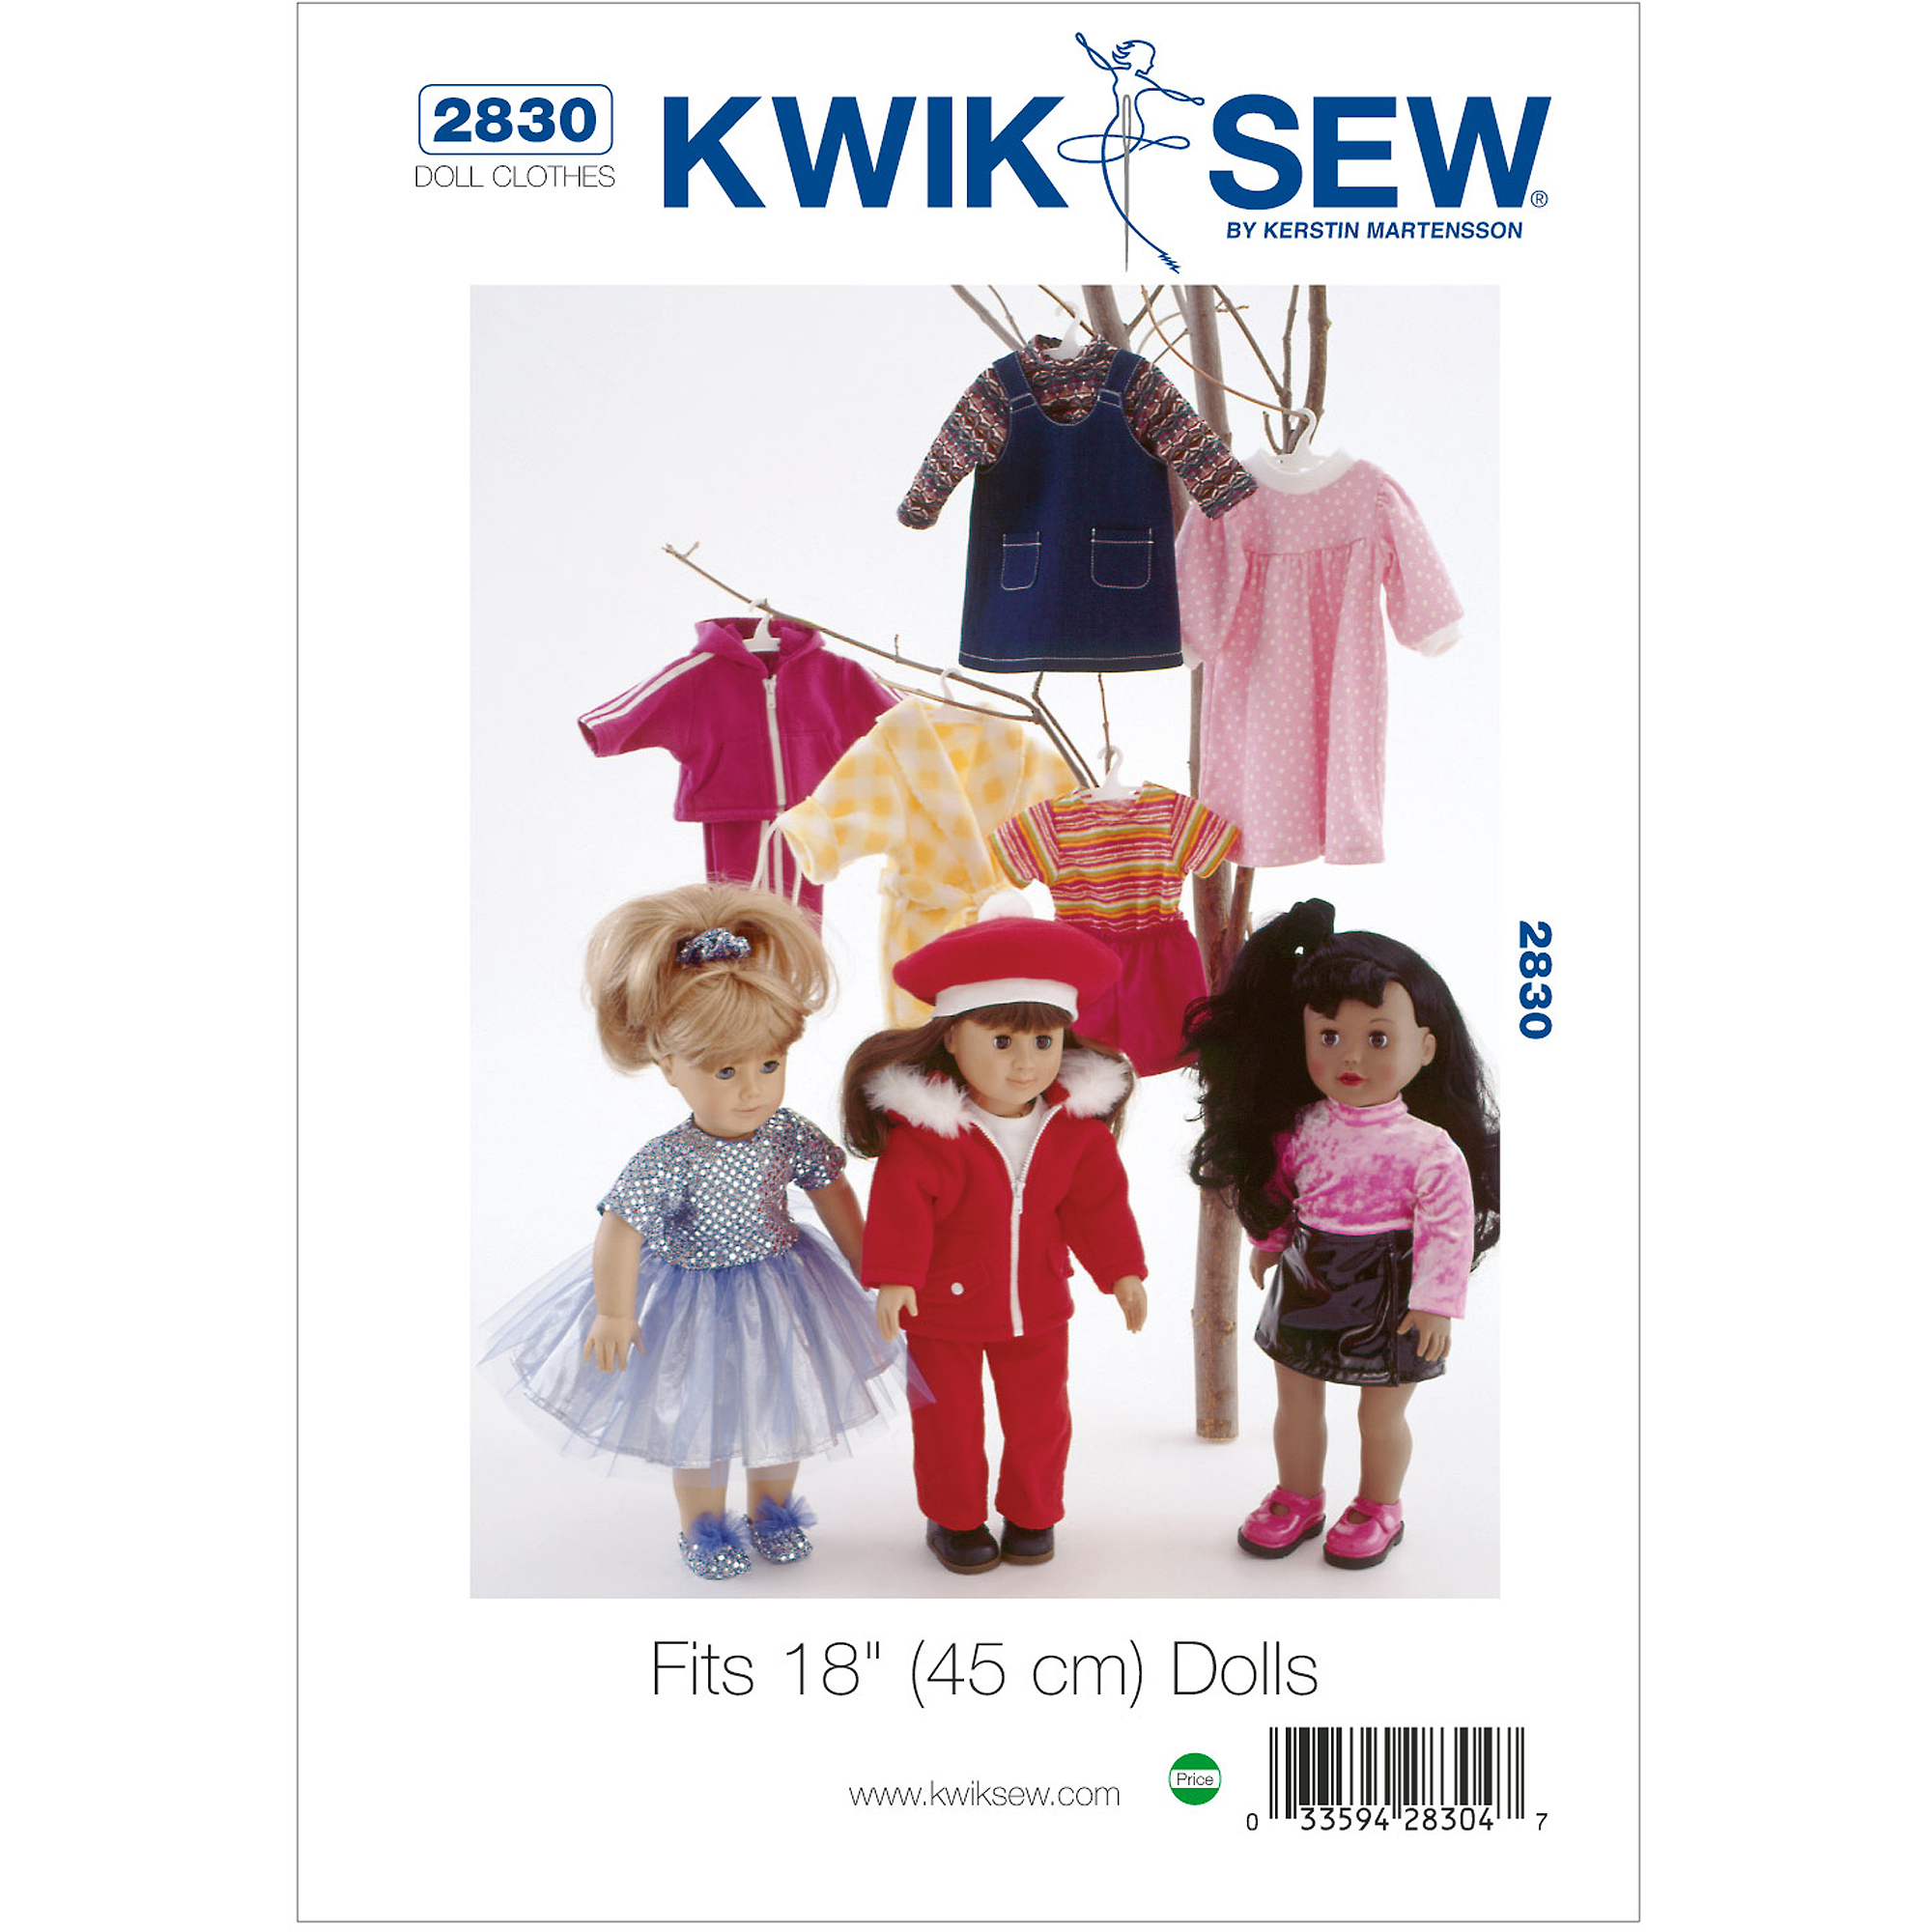 "Kwik Sew Pattern Doll Clothing, Fits 18"" (45cm) Dolls"